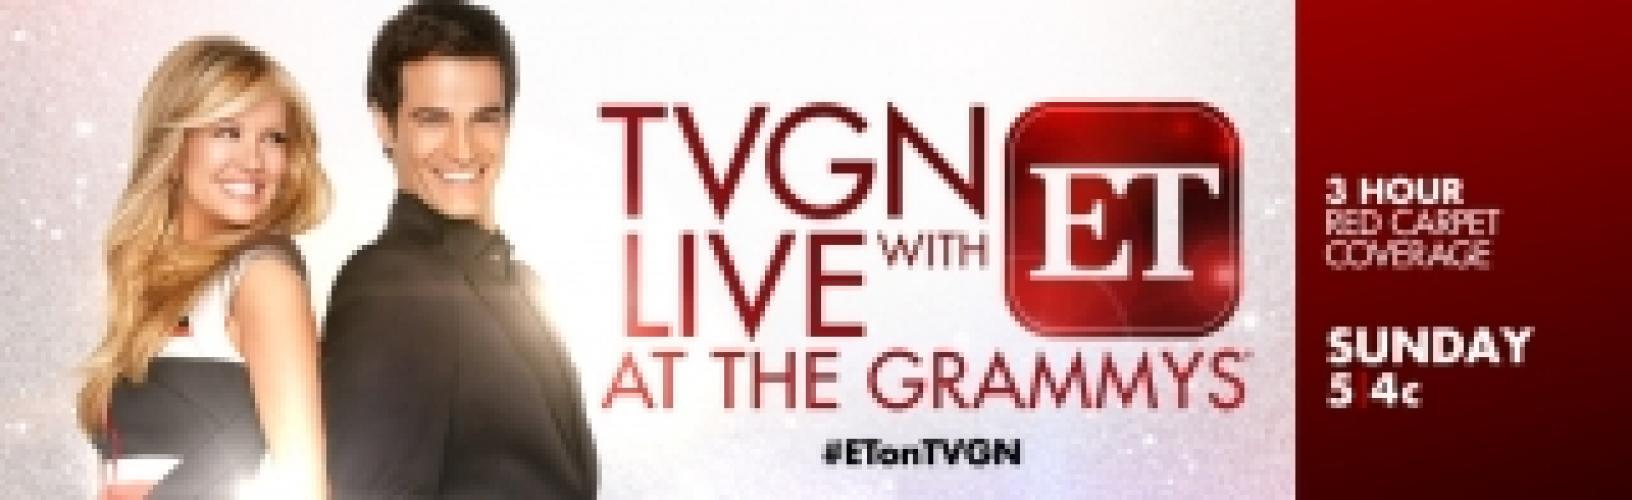 TVGN Live with ET next episode air date poster